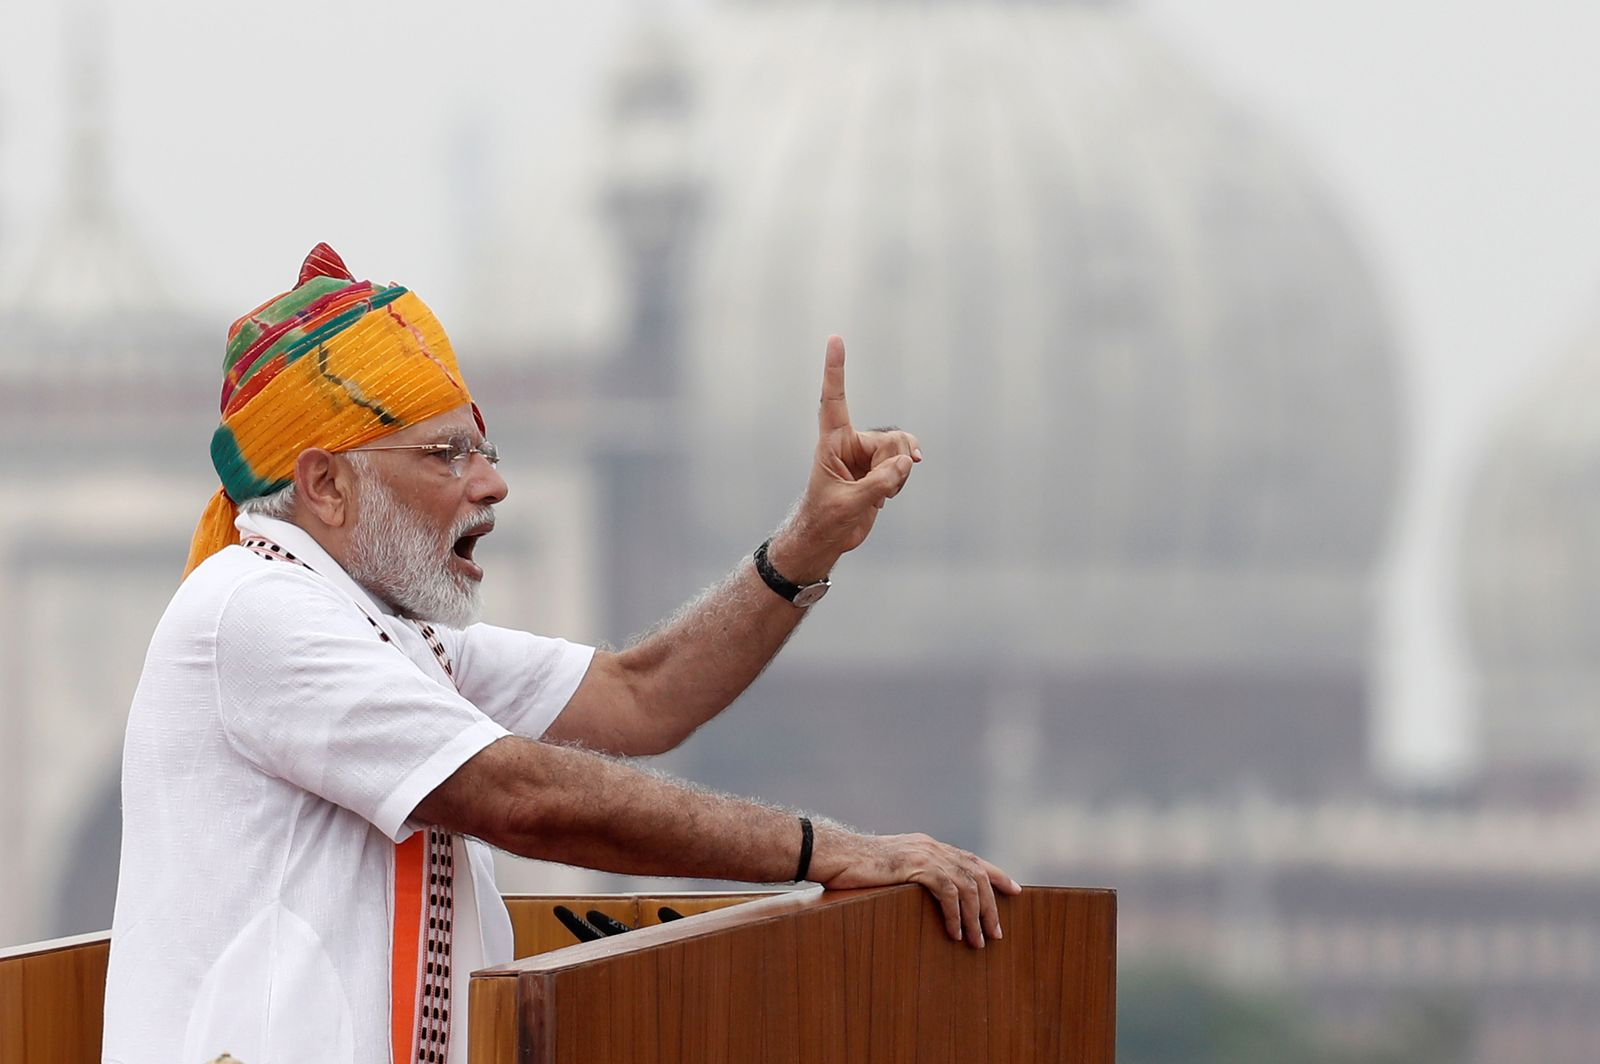 Indian Prime Minister Narendra Modi attends Independence Day celebrations at the historic Red Fort in Delhi